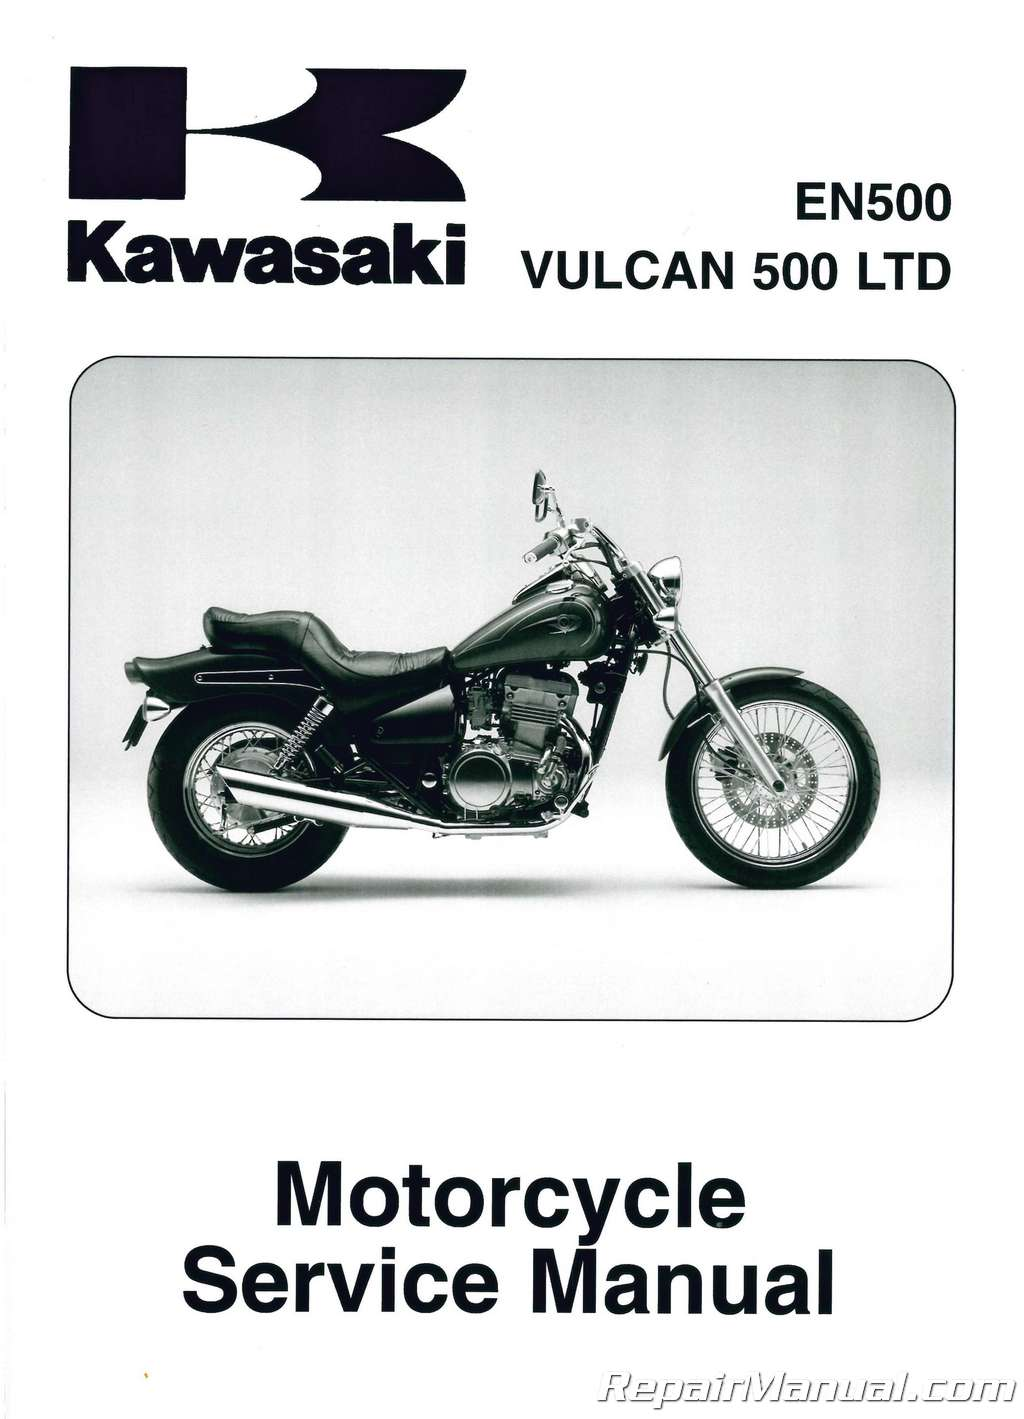 1996 2009 kawasaki en500c vulcan ltd motorcycle service manual. Black Bedroom Furniture Sets. Home Design Ideas